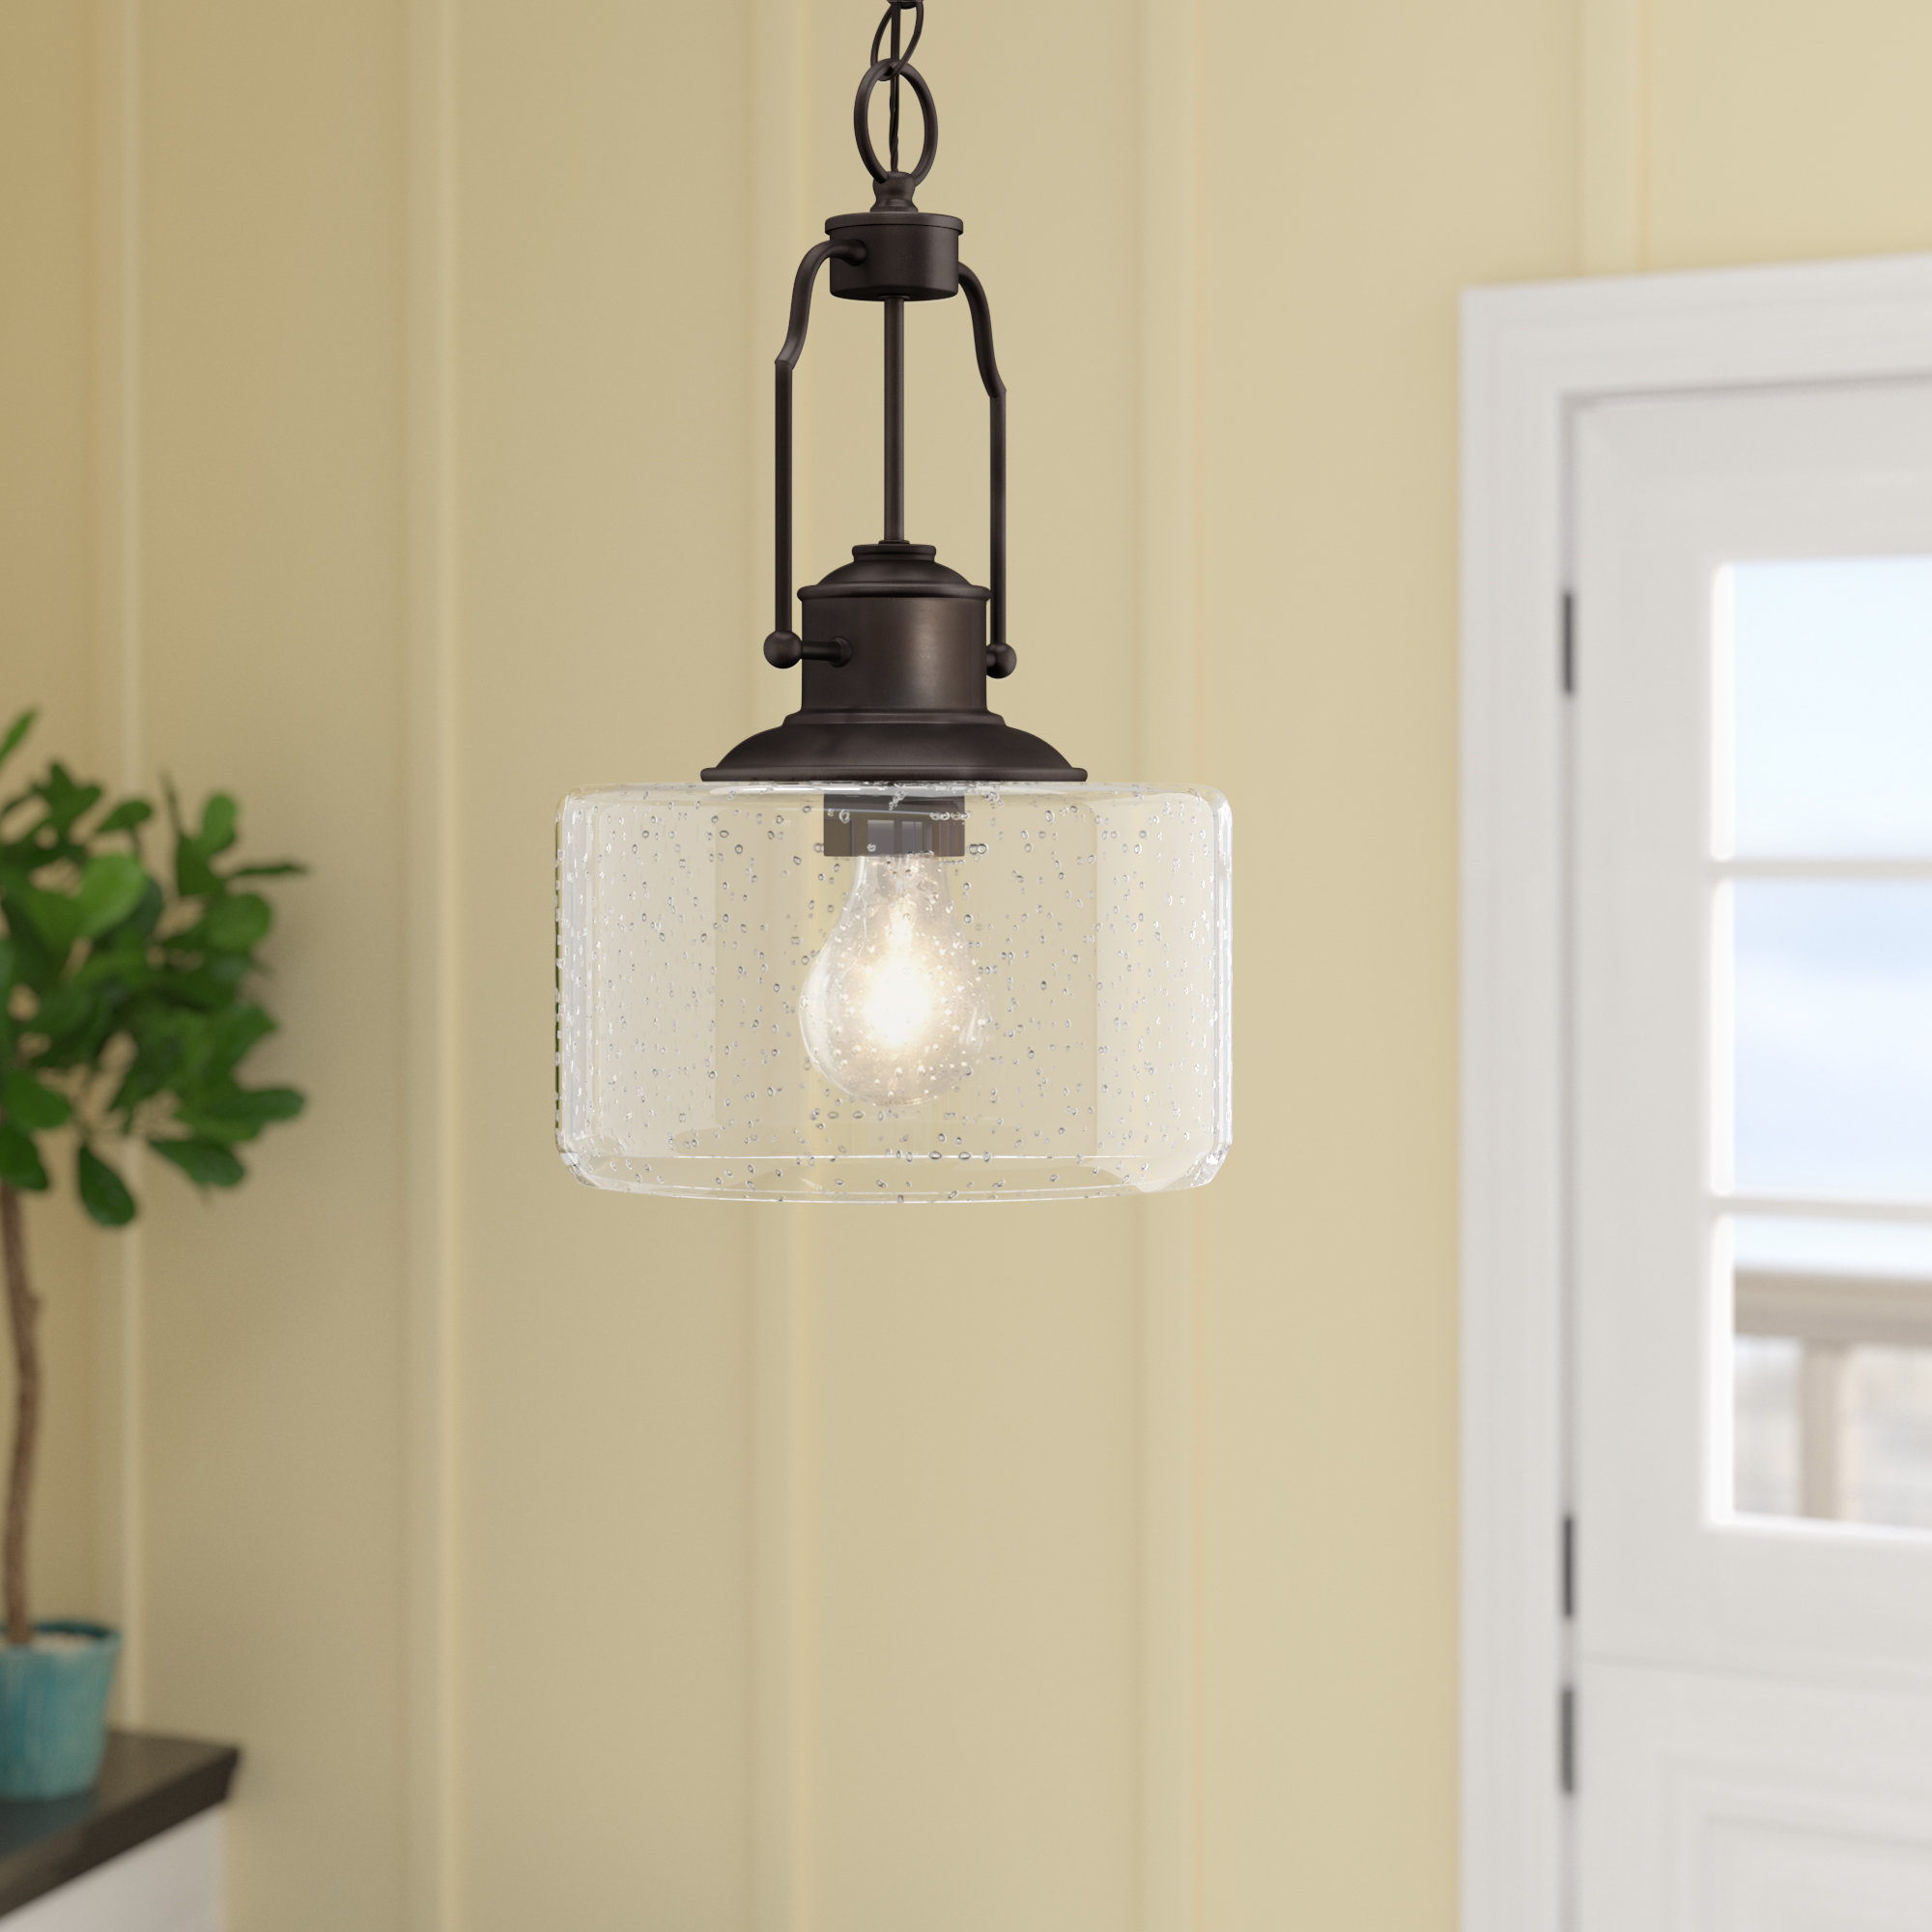 Famous Terry 1 Light Single Bell Pendants Pertaining To 1 Light Drum Pendant (View 7 of 25)